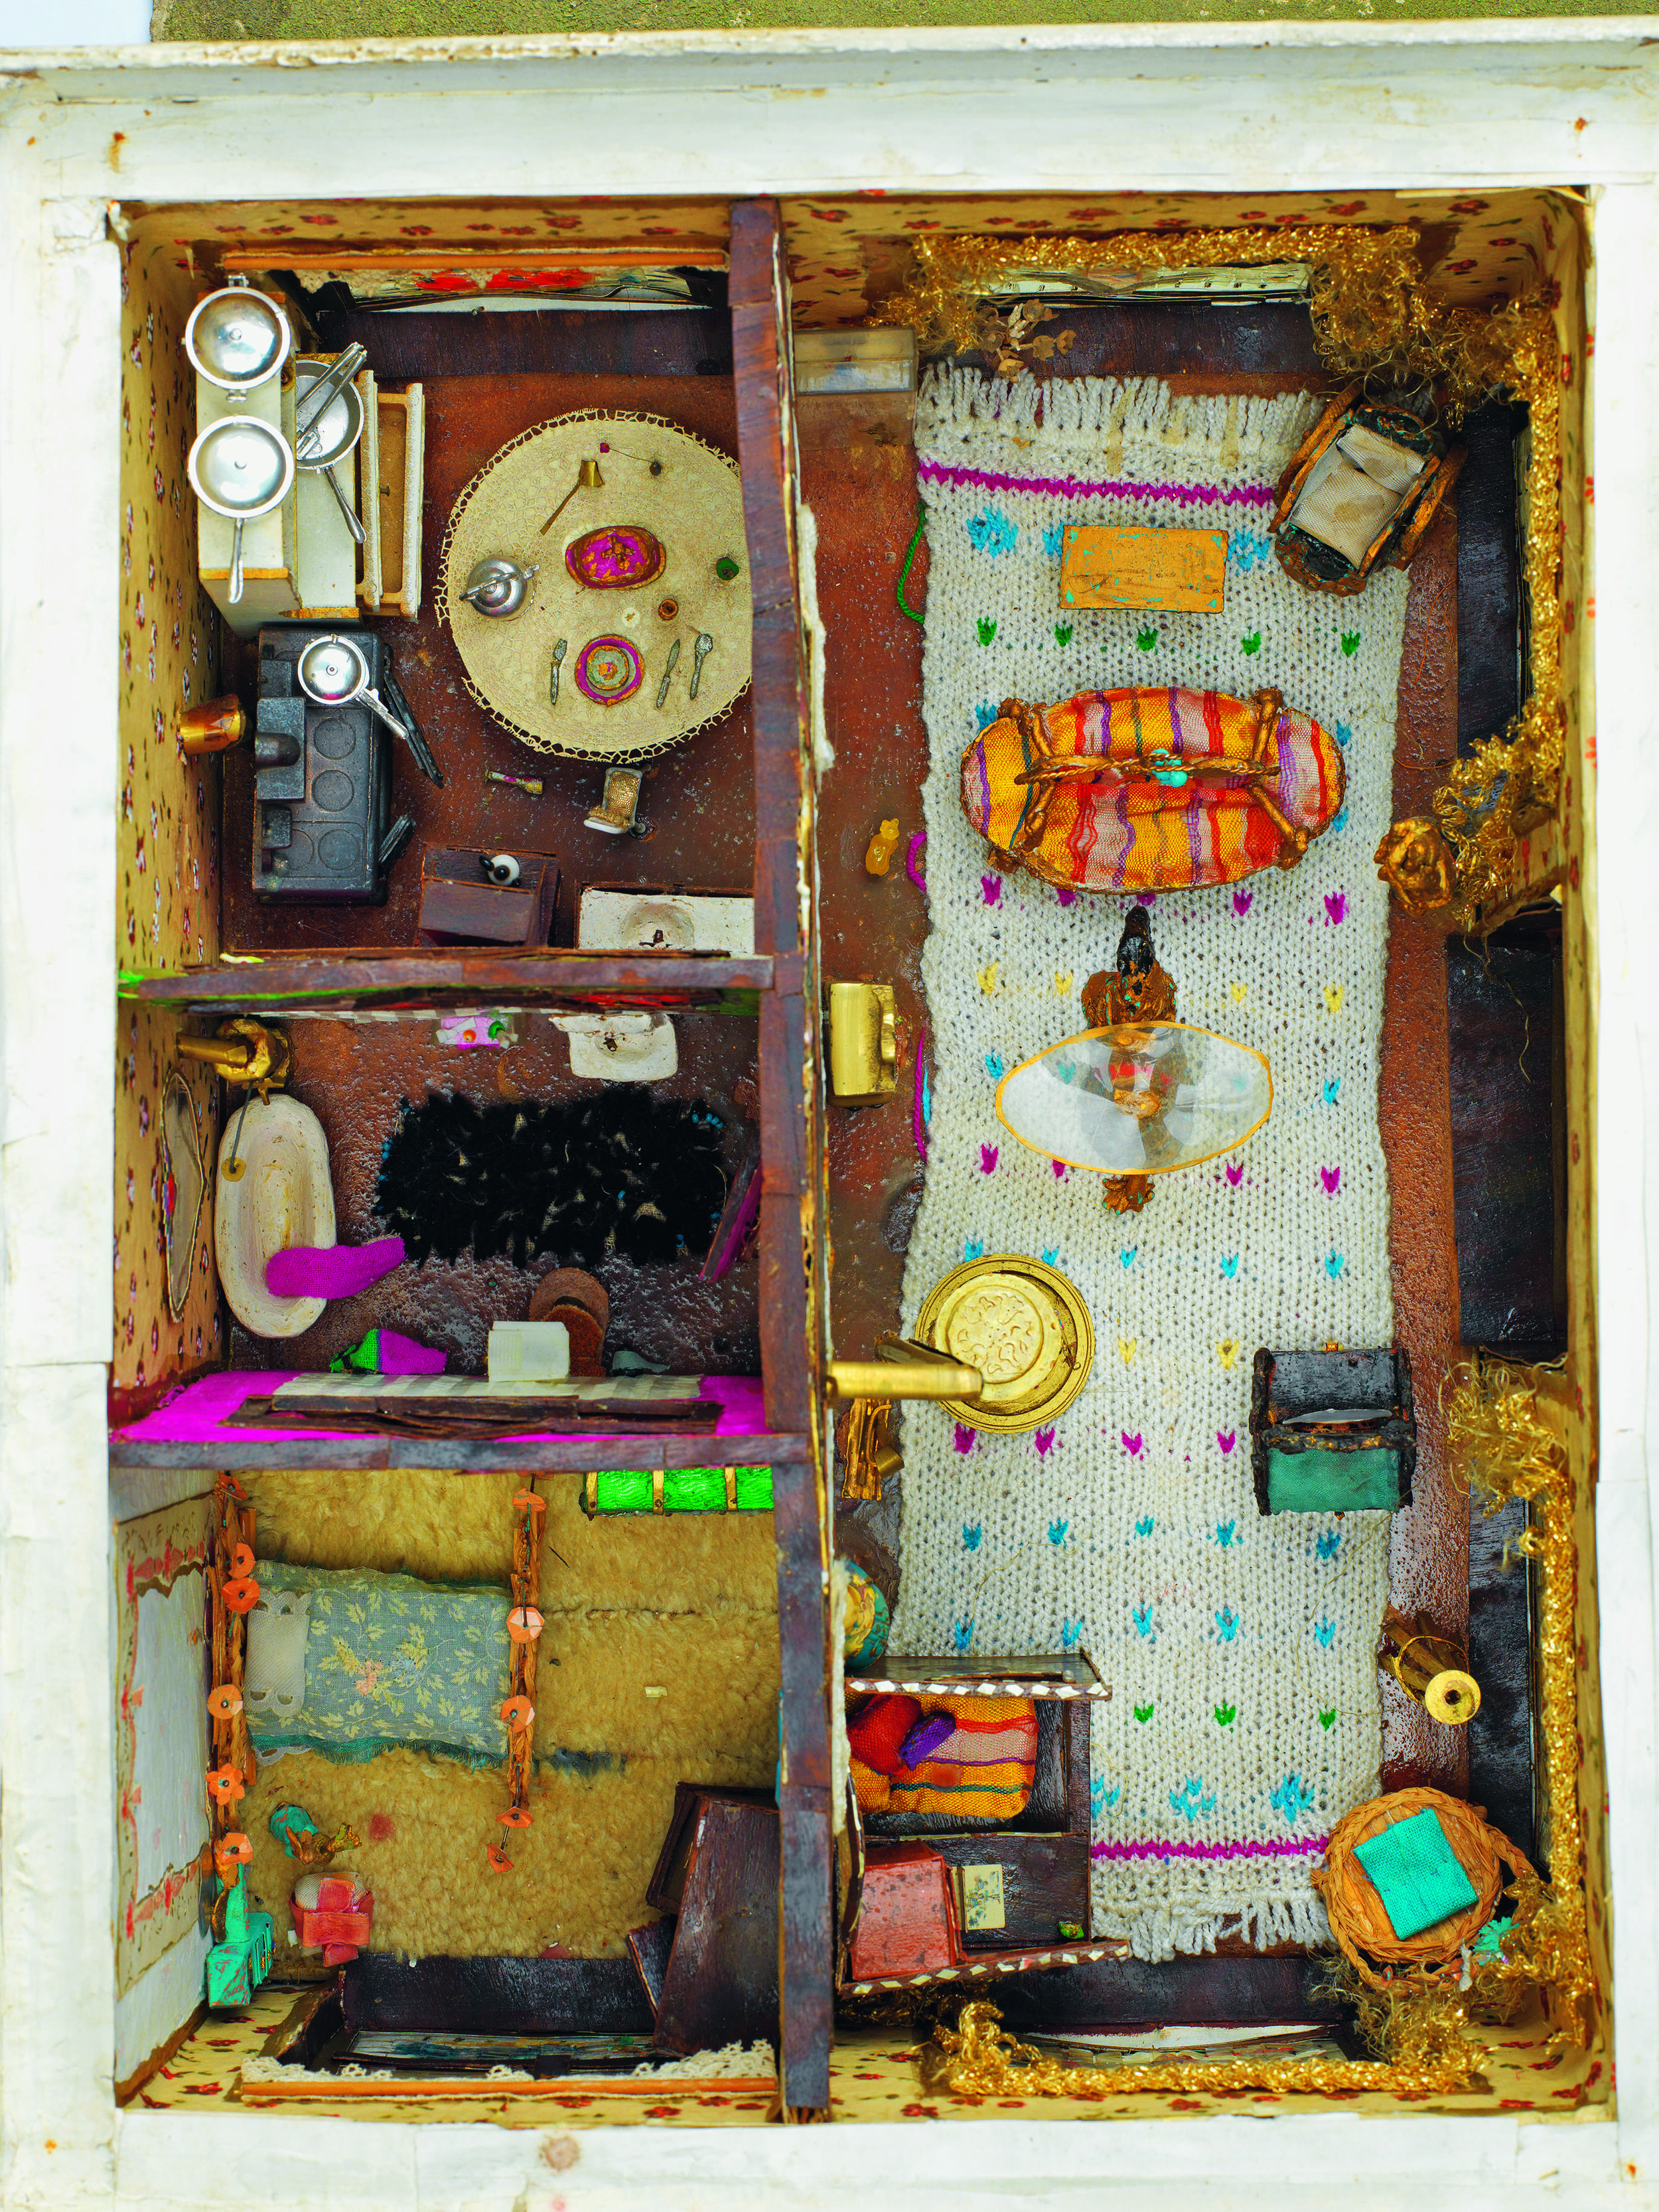 Füsun Onur, 'The Dollhouse' (1970s), interior shot, image courtesy of Ilhan Onur.